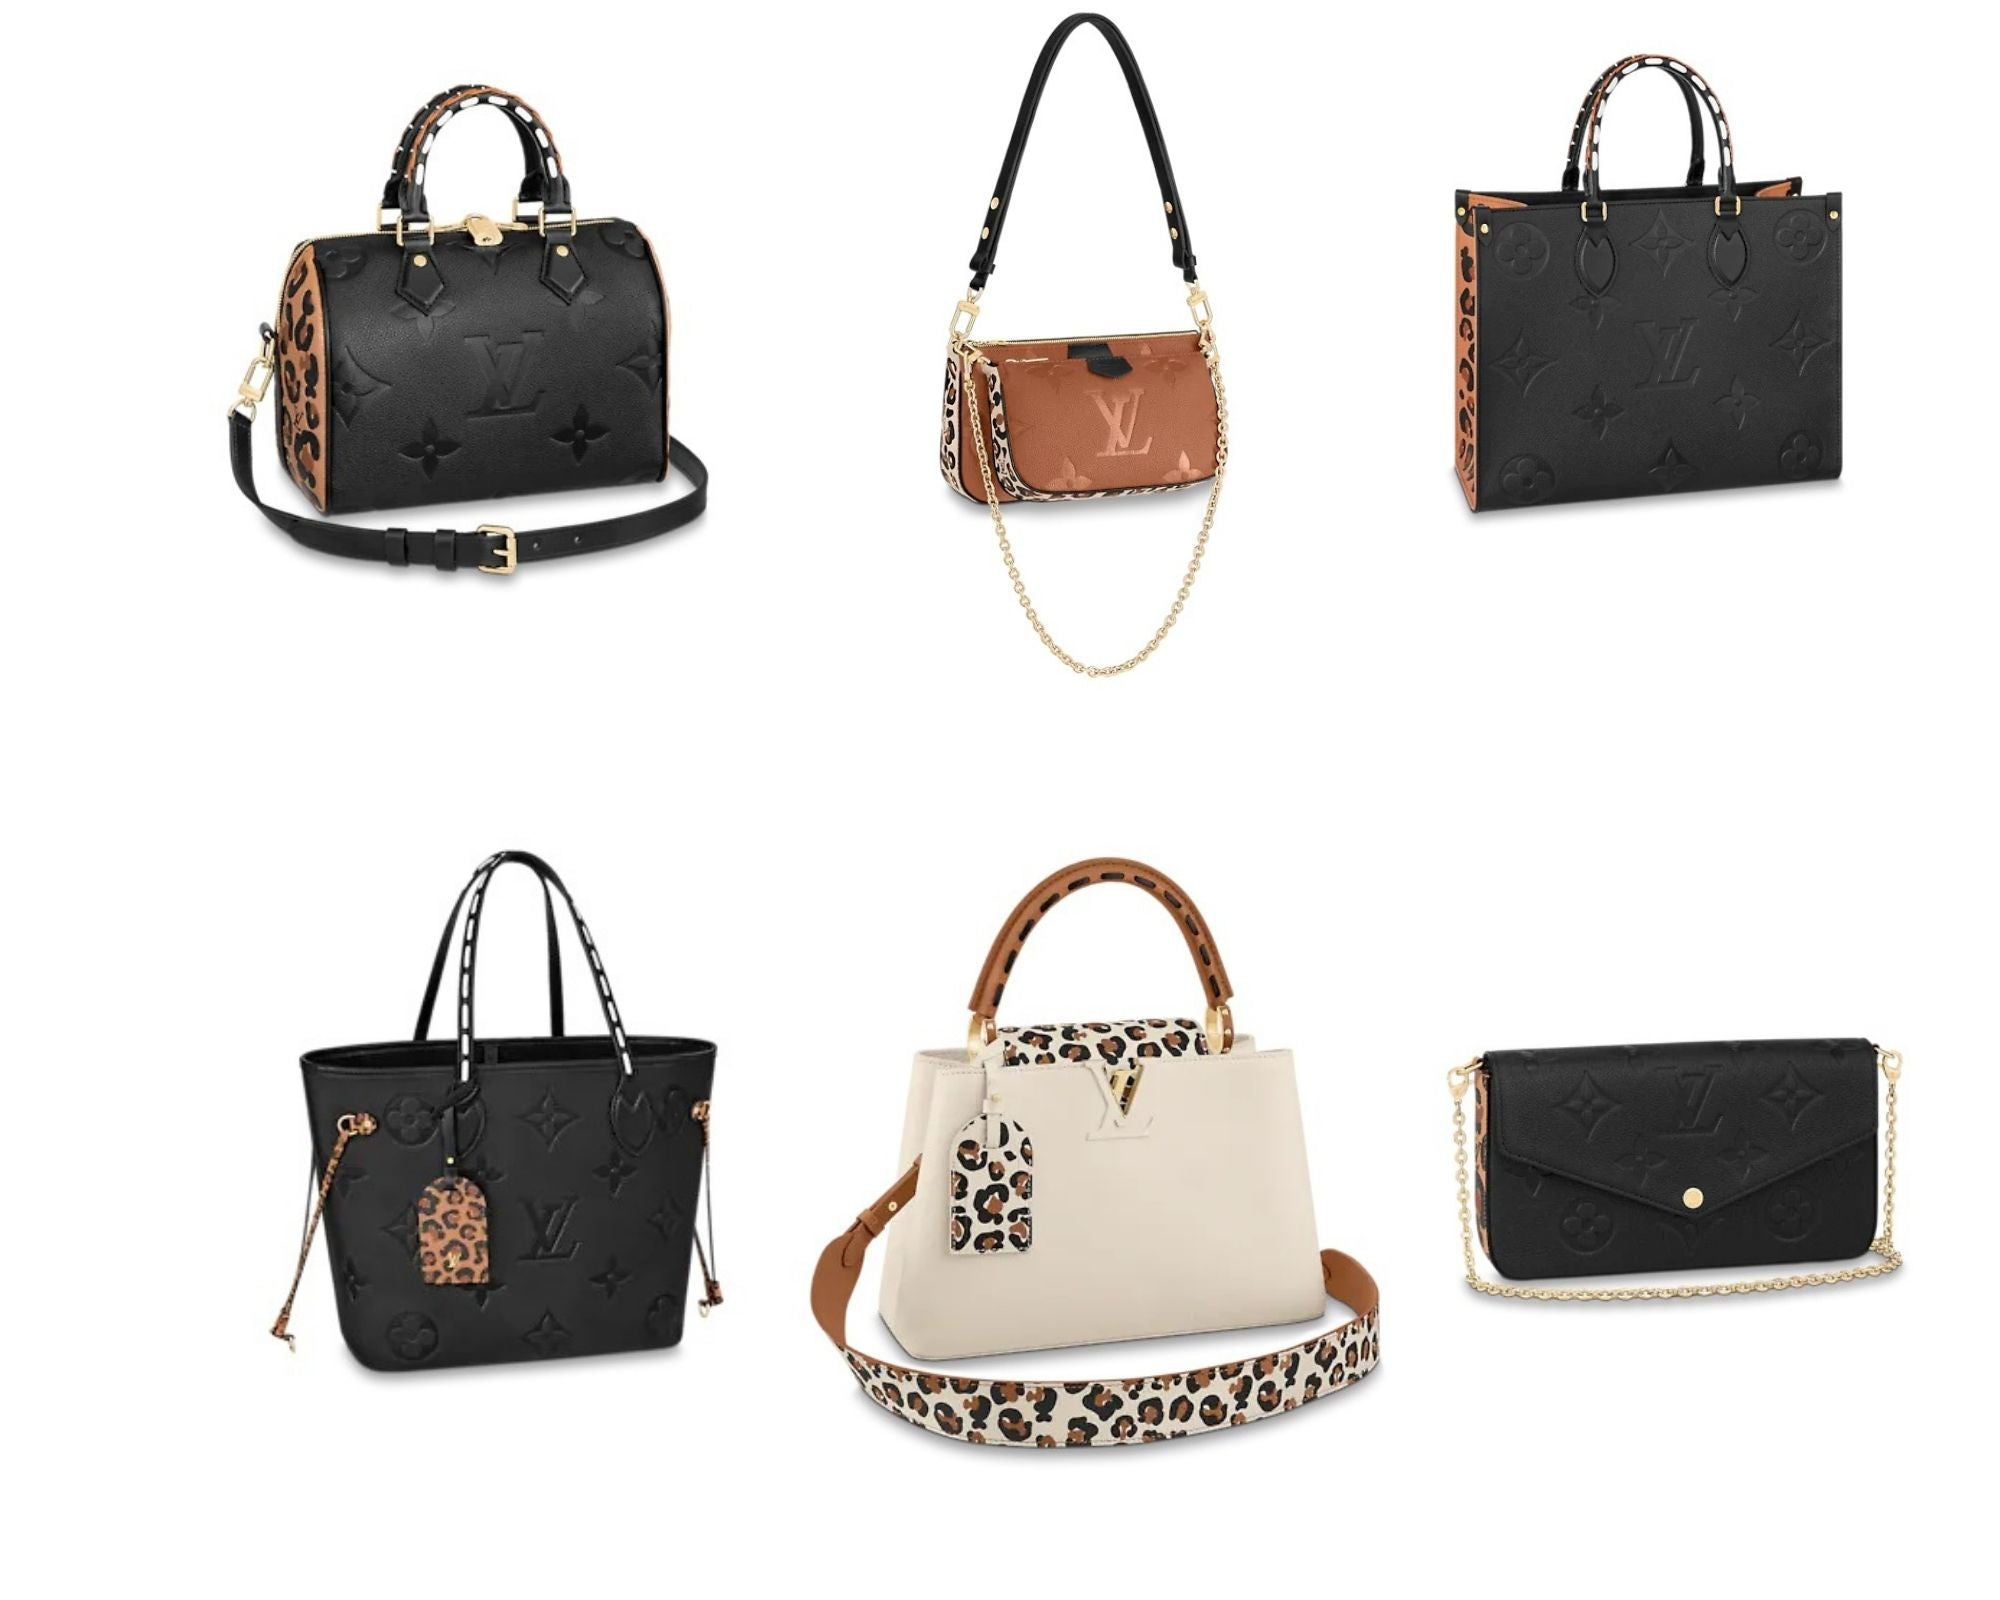 Louis Vuitton Wild At Heart Collection: Handbags and Small Leather Goods